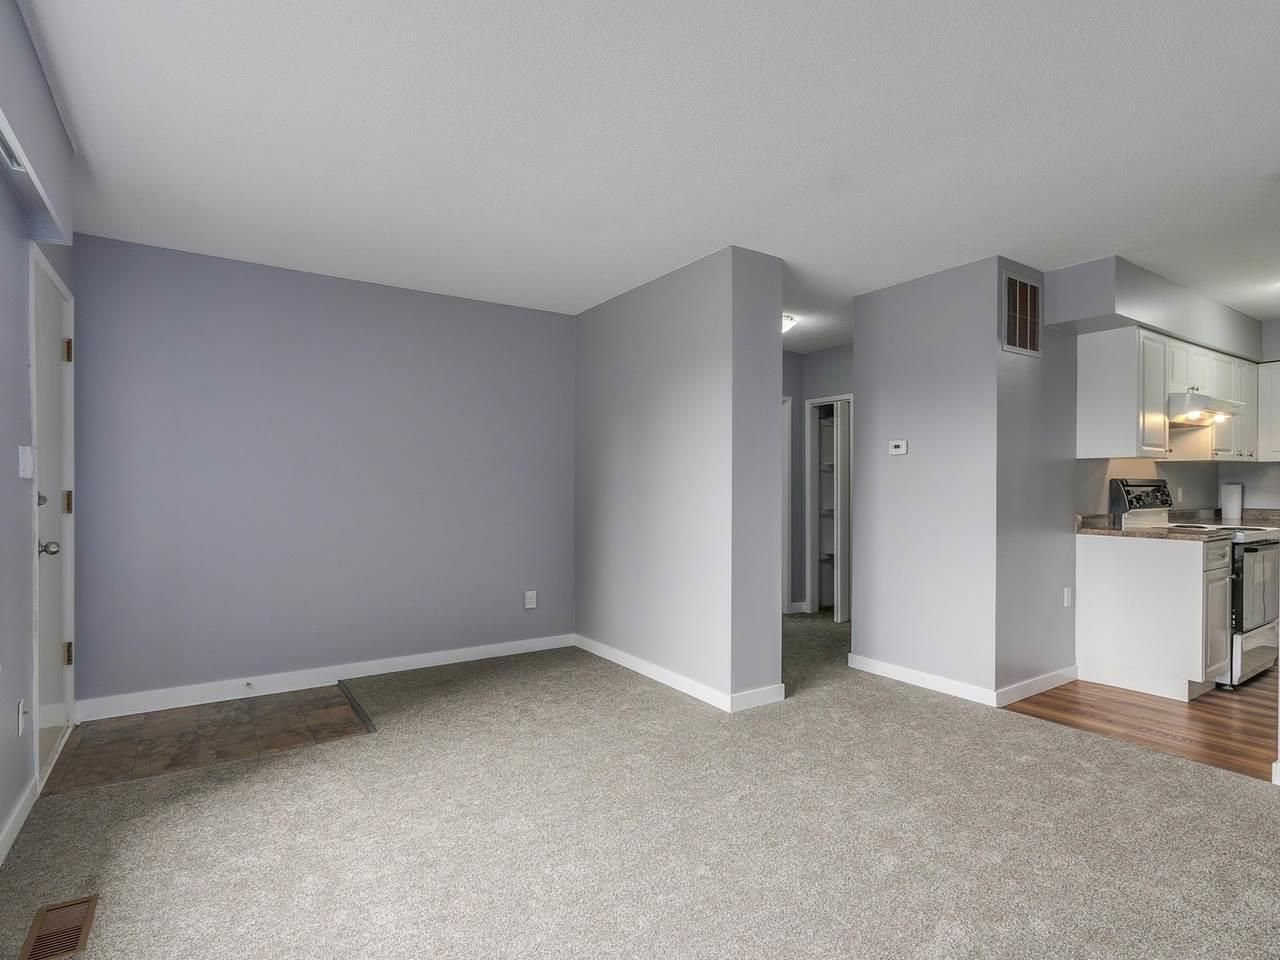 """Photo 6: Photos: 1673 GREENMOUNT Avenue in Port Coquitlam: Oxford Heights 1/2 Duplex for sale in """"OXFORD HEIGHTS"""" : MLS®# R2221936"""